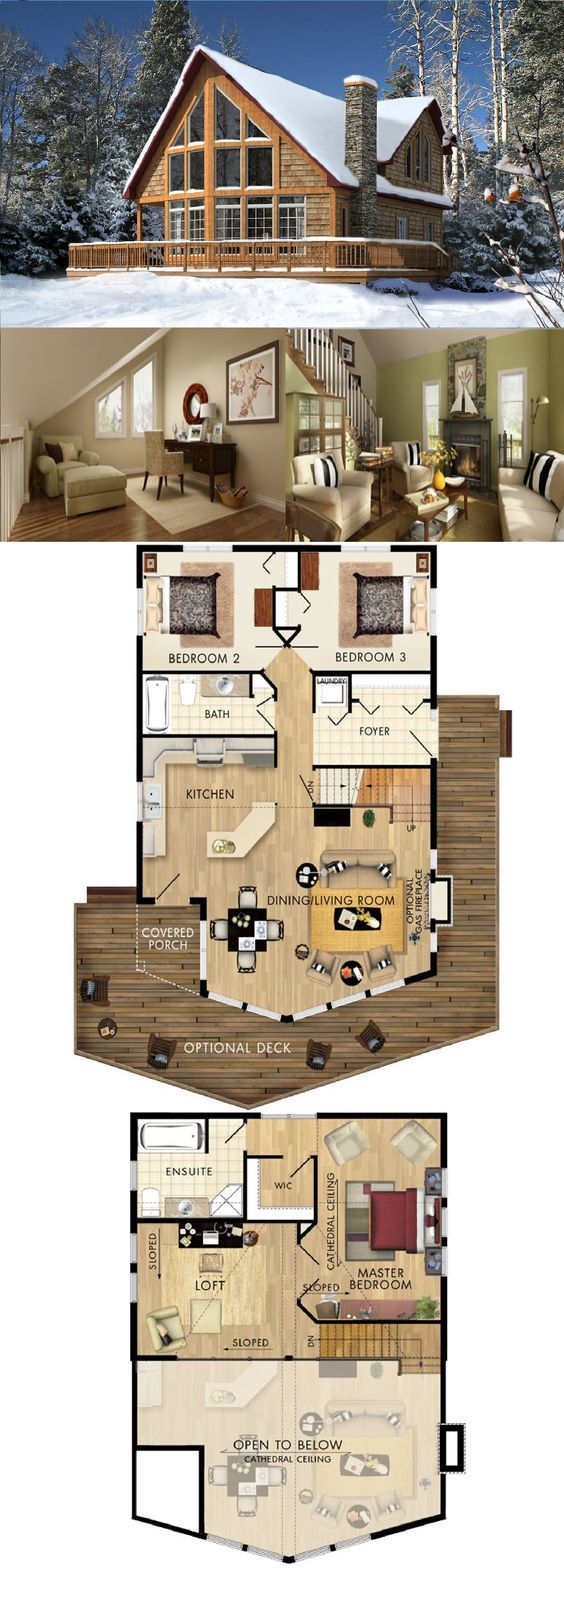 best 25 small log cabin plans ideas only on pinterest small beaver homes cottages beauport ii 1600 sq